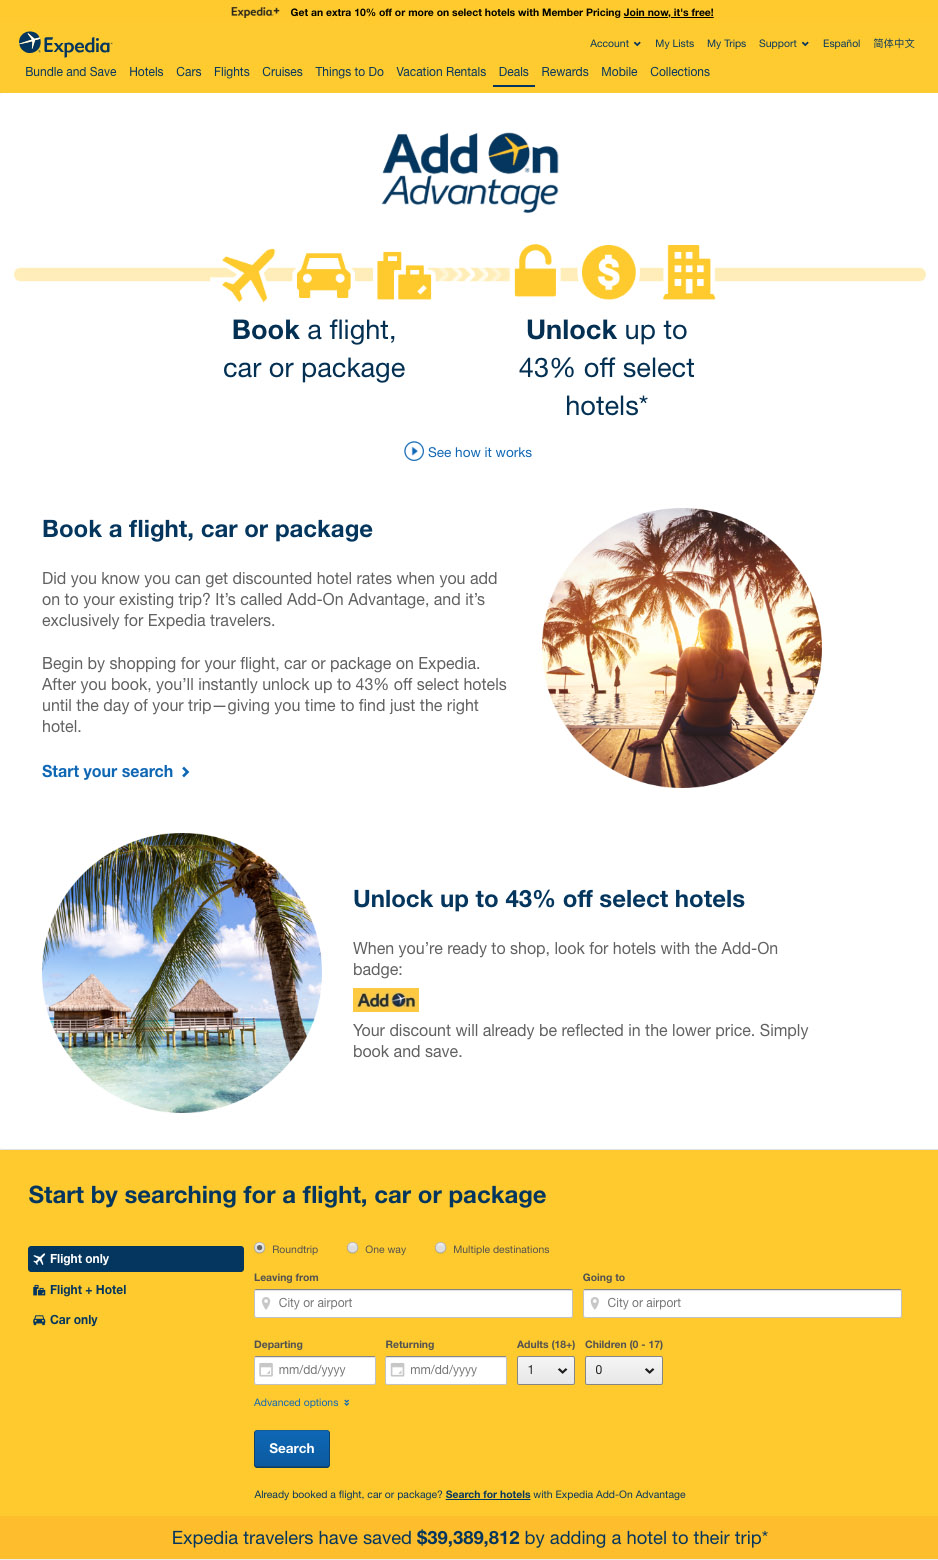 Expedia Add-On Advantage